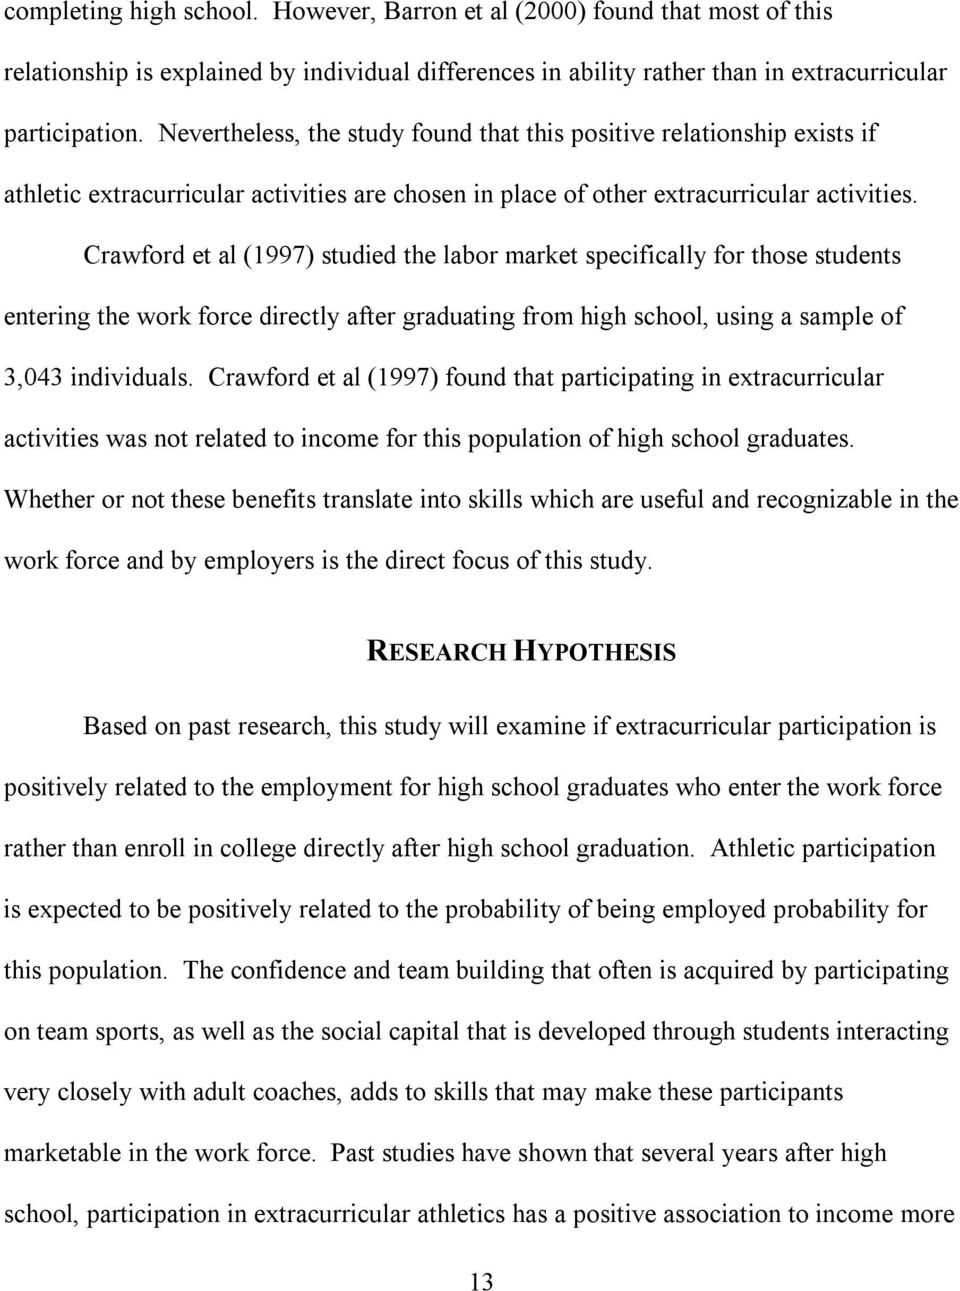 Crawford et al (1997) studied the labor market specifically for those students entering the work force directly after graduating from high school, using a sample of 3,043 individuals.